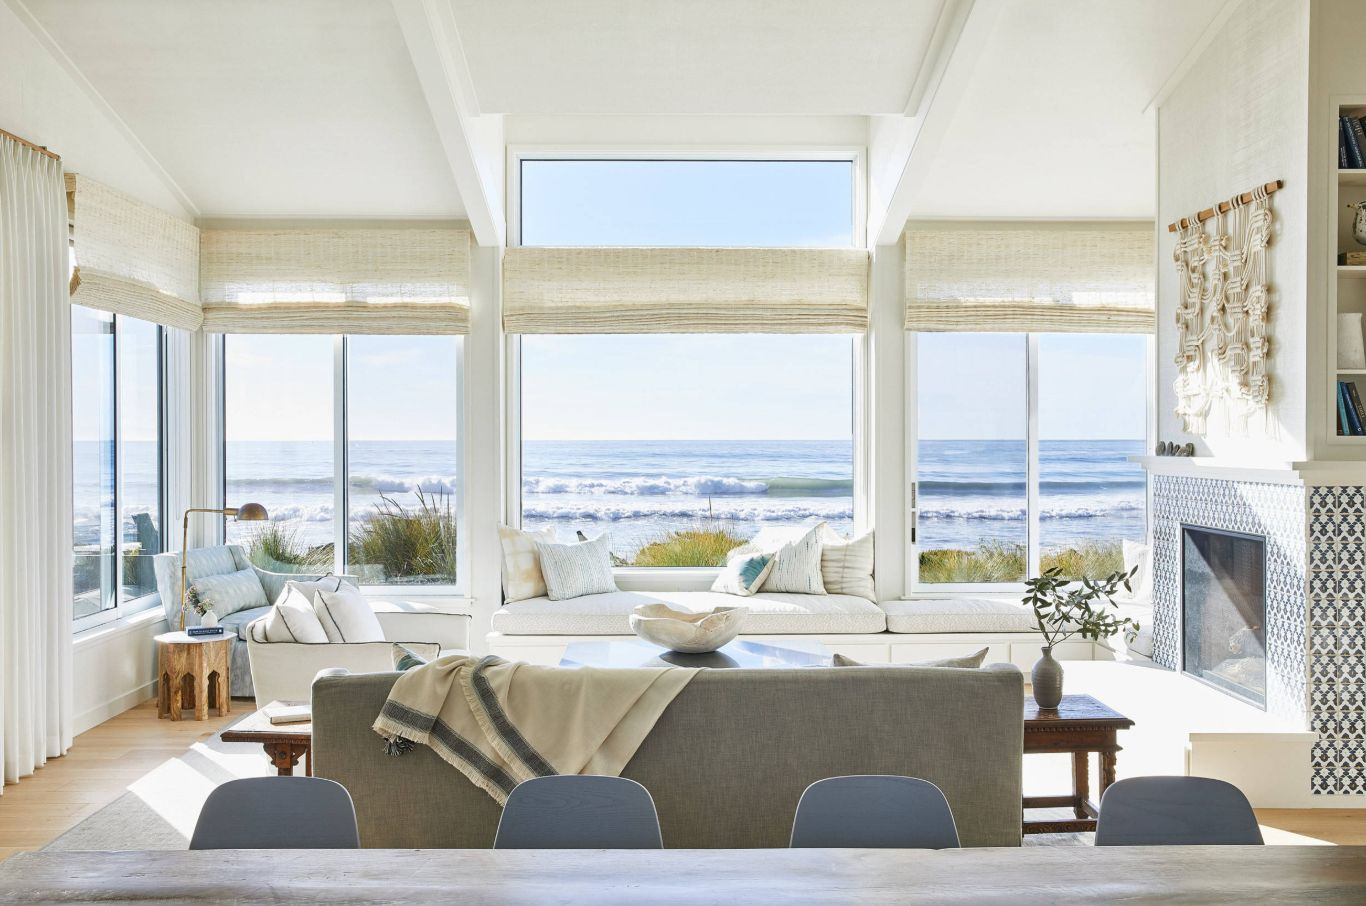 One would actually expect to see white furniture in an ocean-side vacation home